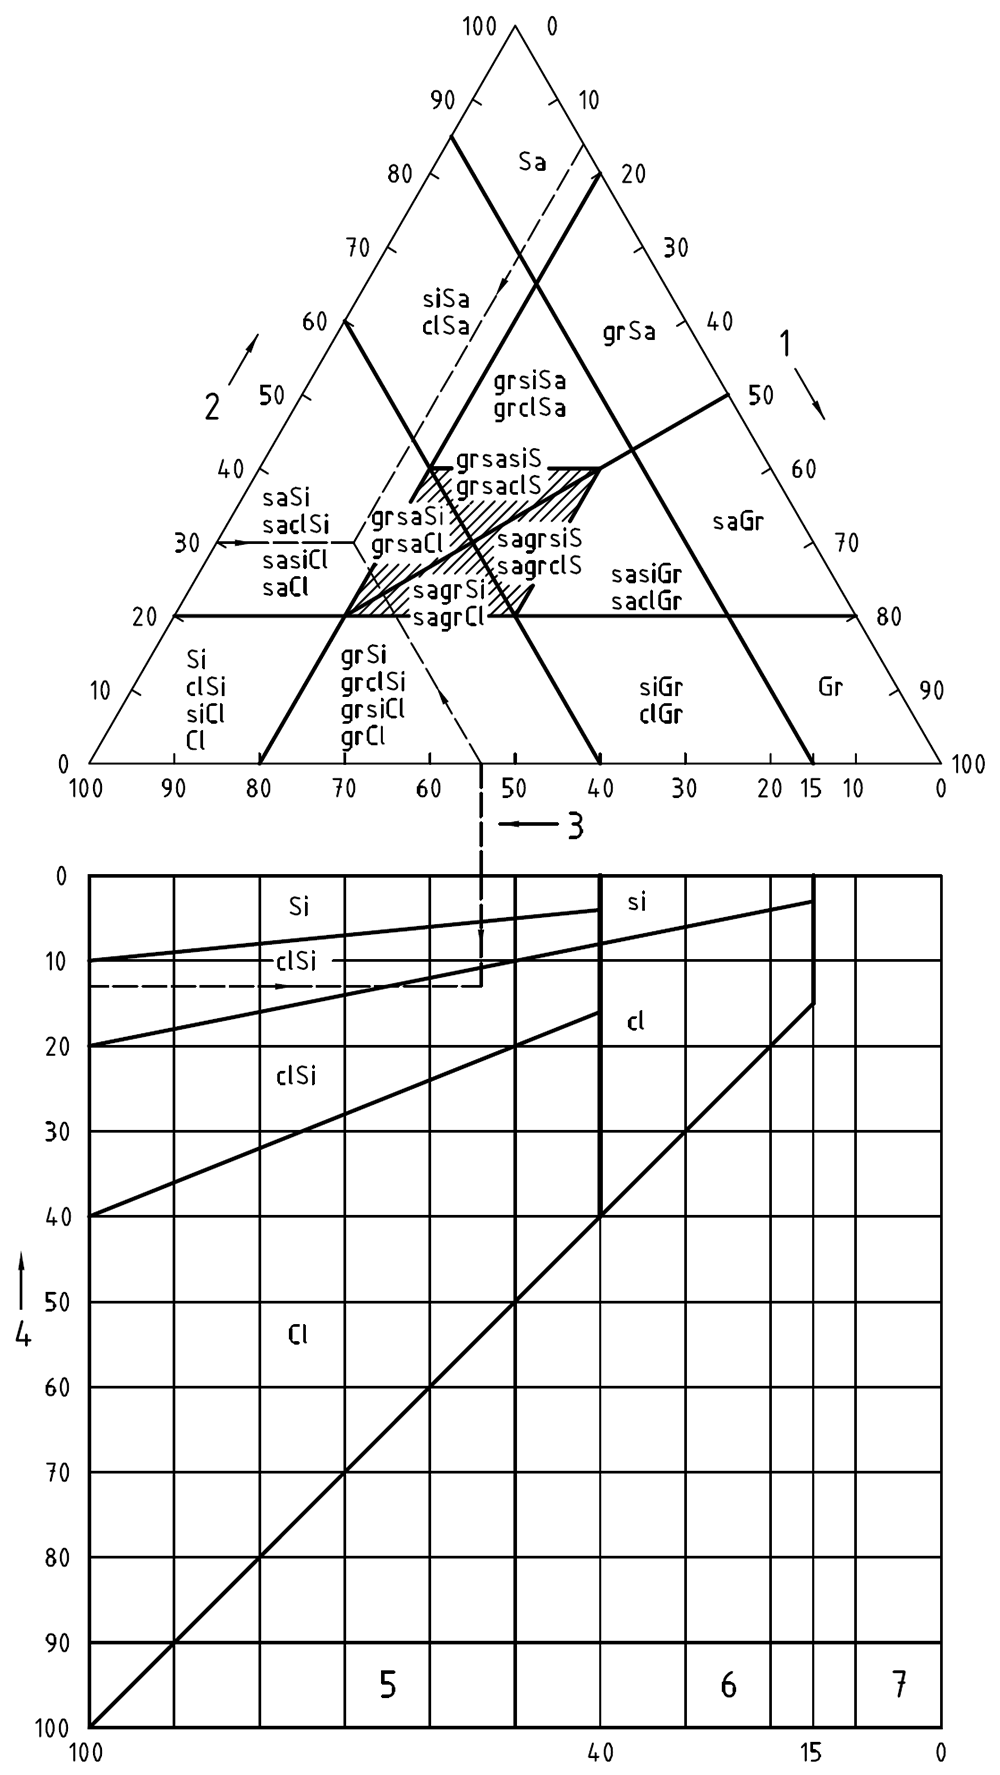 Classification of soils, based on grading alone